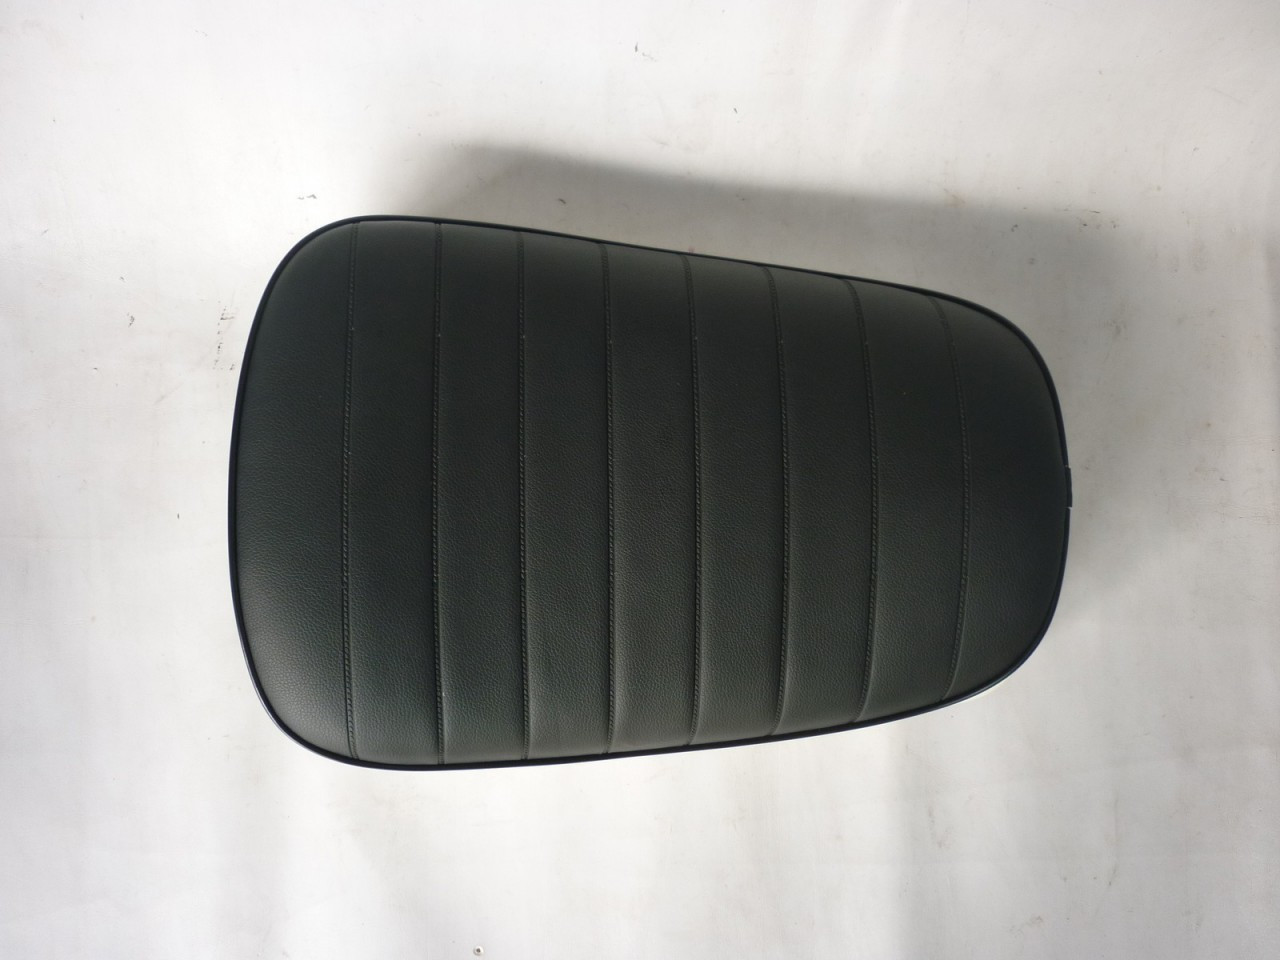 Honda CB750 Police K0 to K6 P0 to P6 complete motorcycle seat #3069